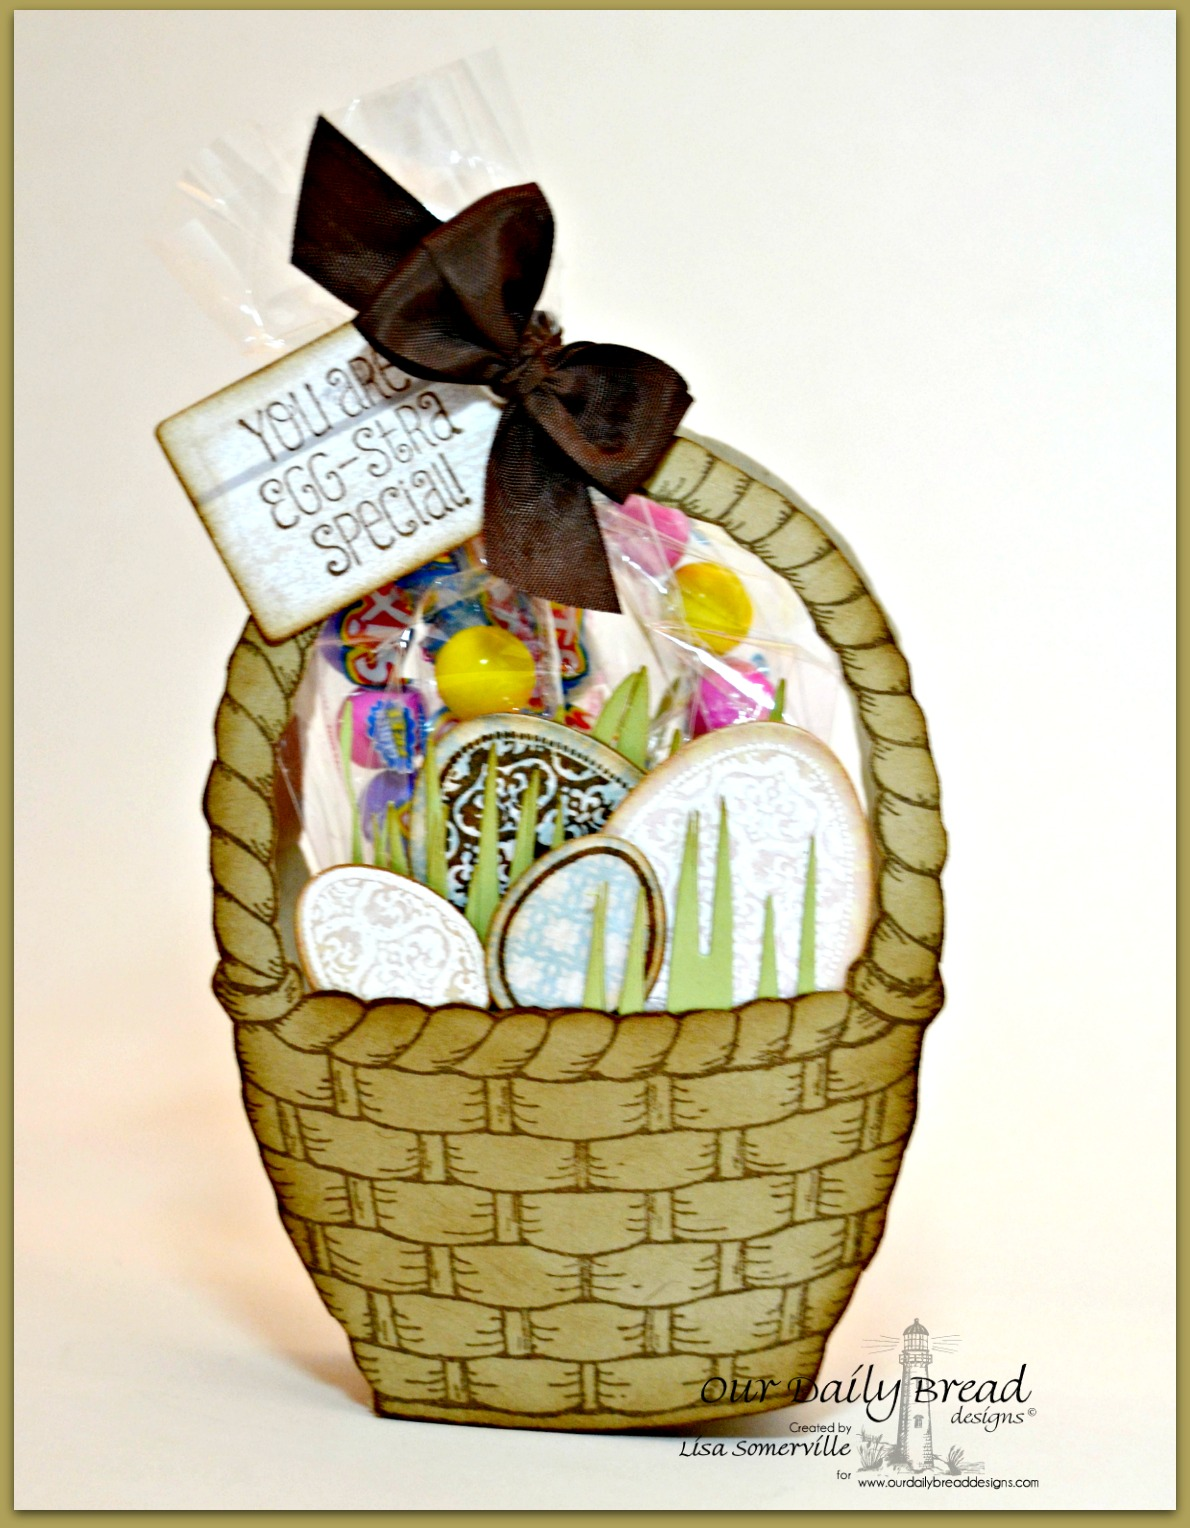 Stamps - Basket of Blessings, Blessed Easter, ODBD Shabby Rose Paper Collection, ODBD Custom Recipe Card and Tags Dies, ODBD Custom Egg Dies, ODBD Custom Grass Border Die